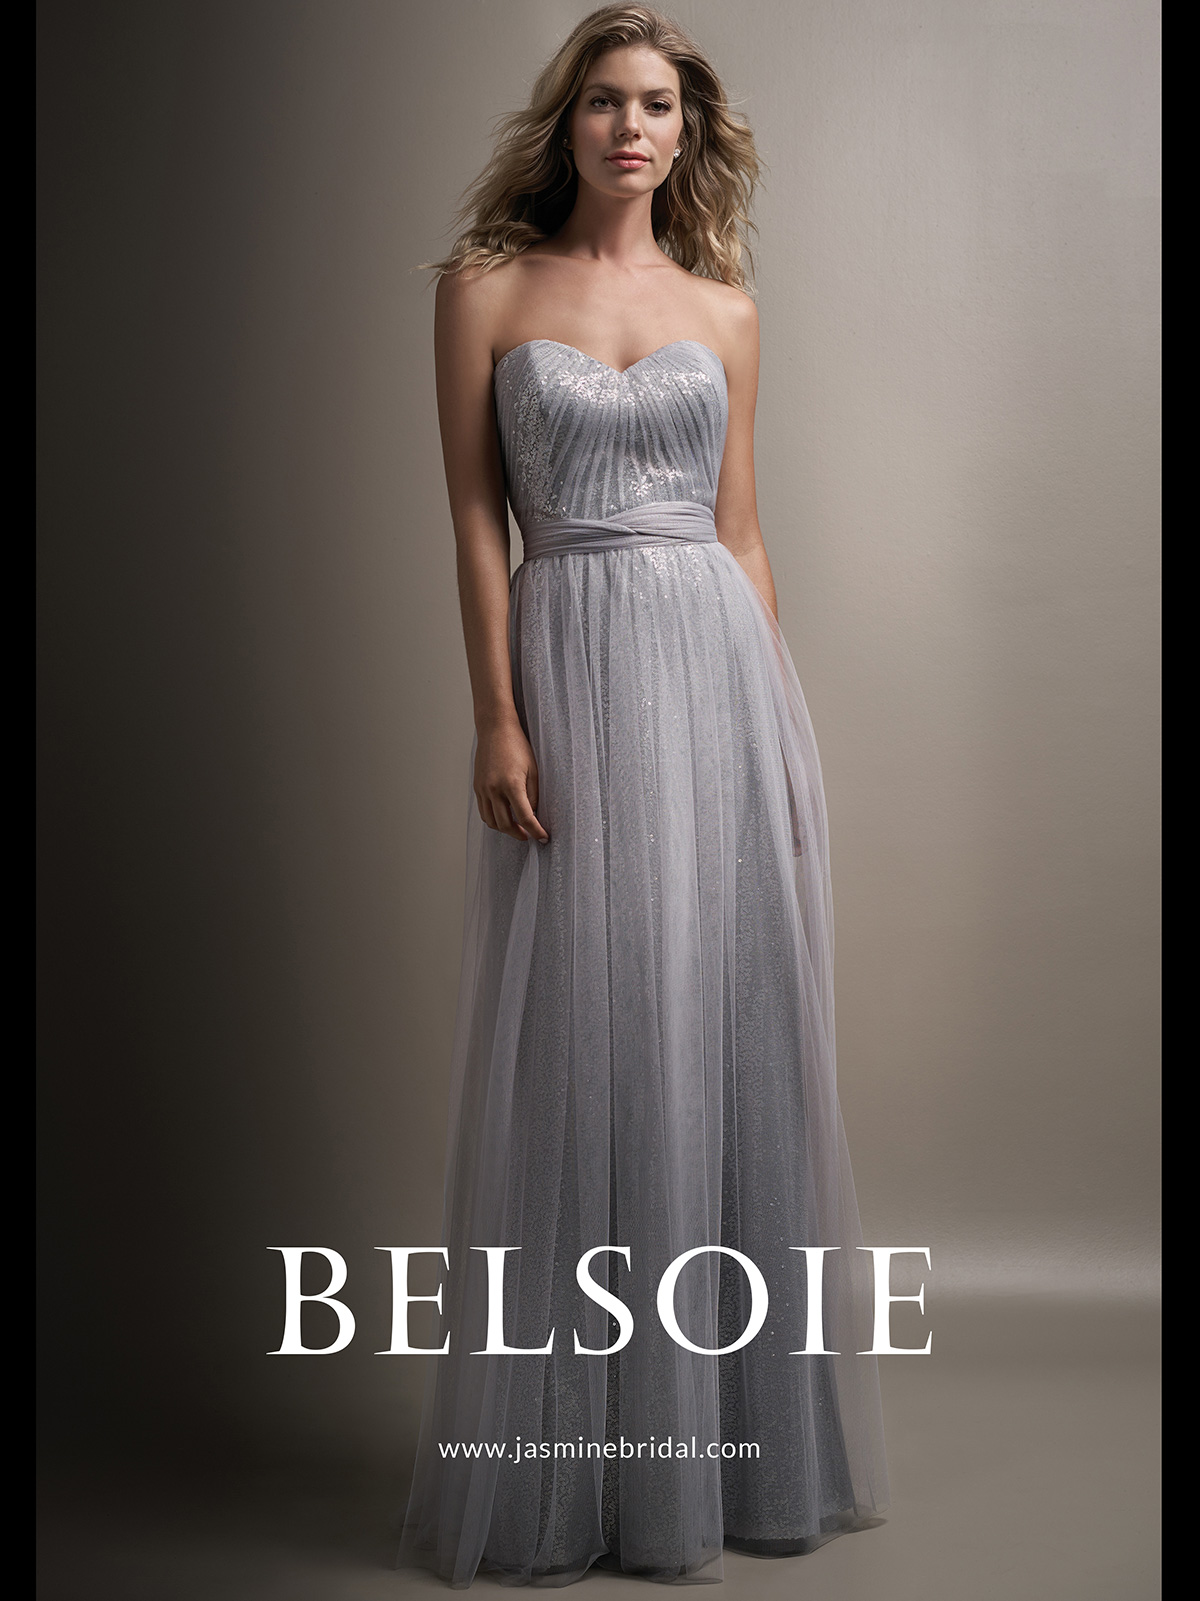 Belsoie l194007 sweetheart a line bridesmaid dressdimitradesigns belsoie l194007 sweetheart bridesmaid dress ombrellifo Choice Image